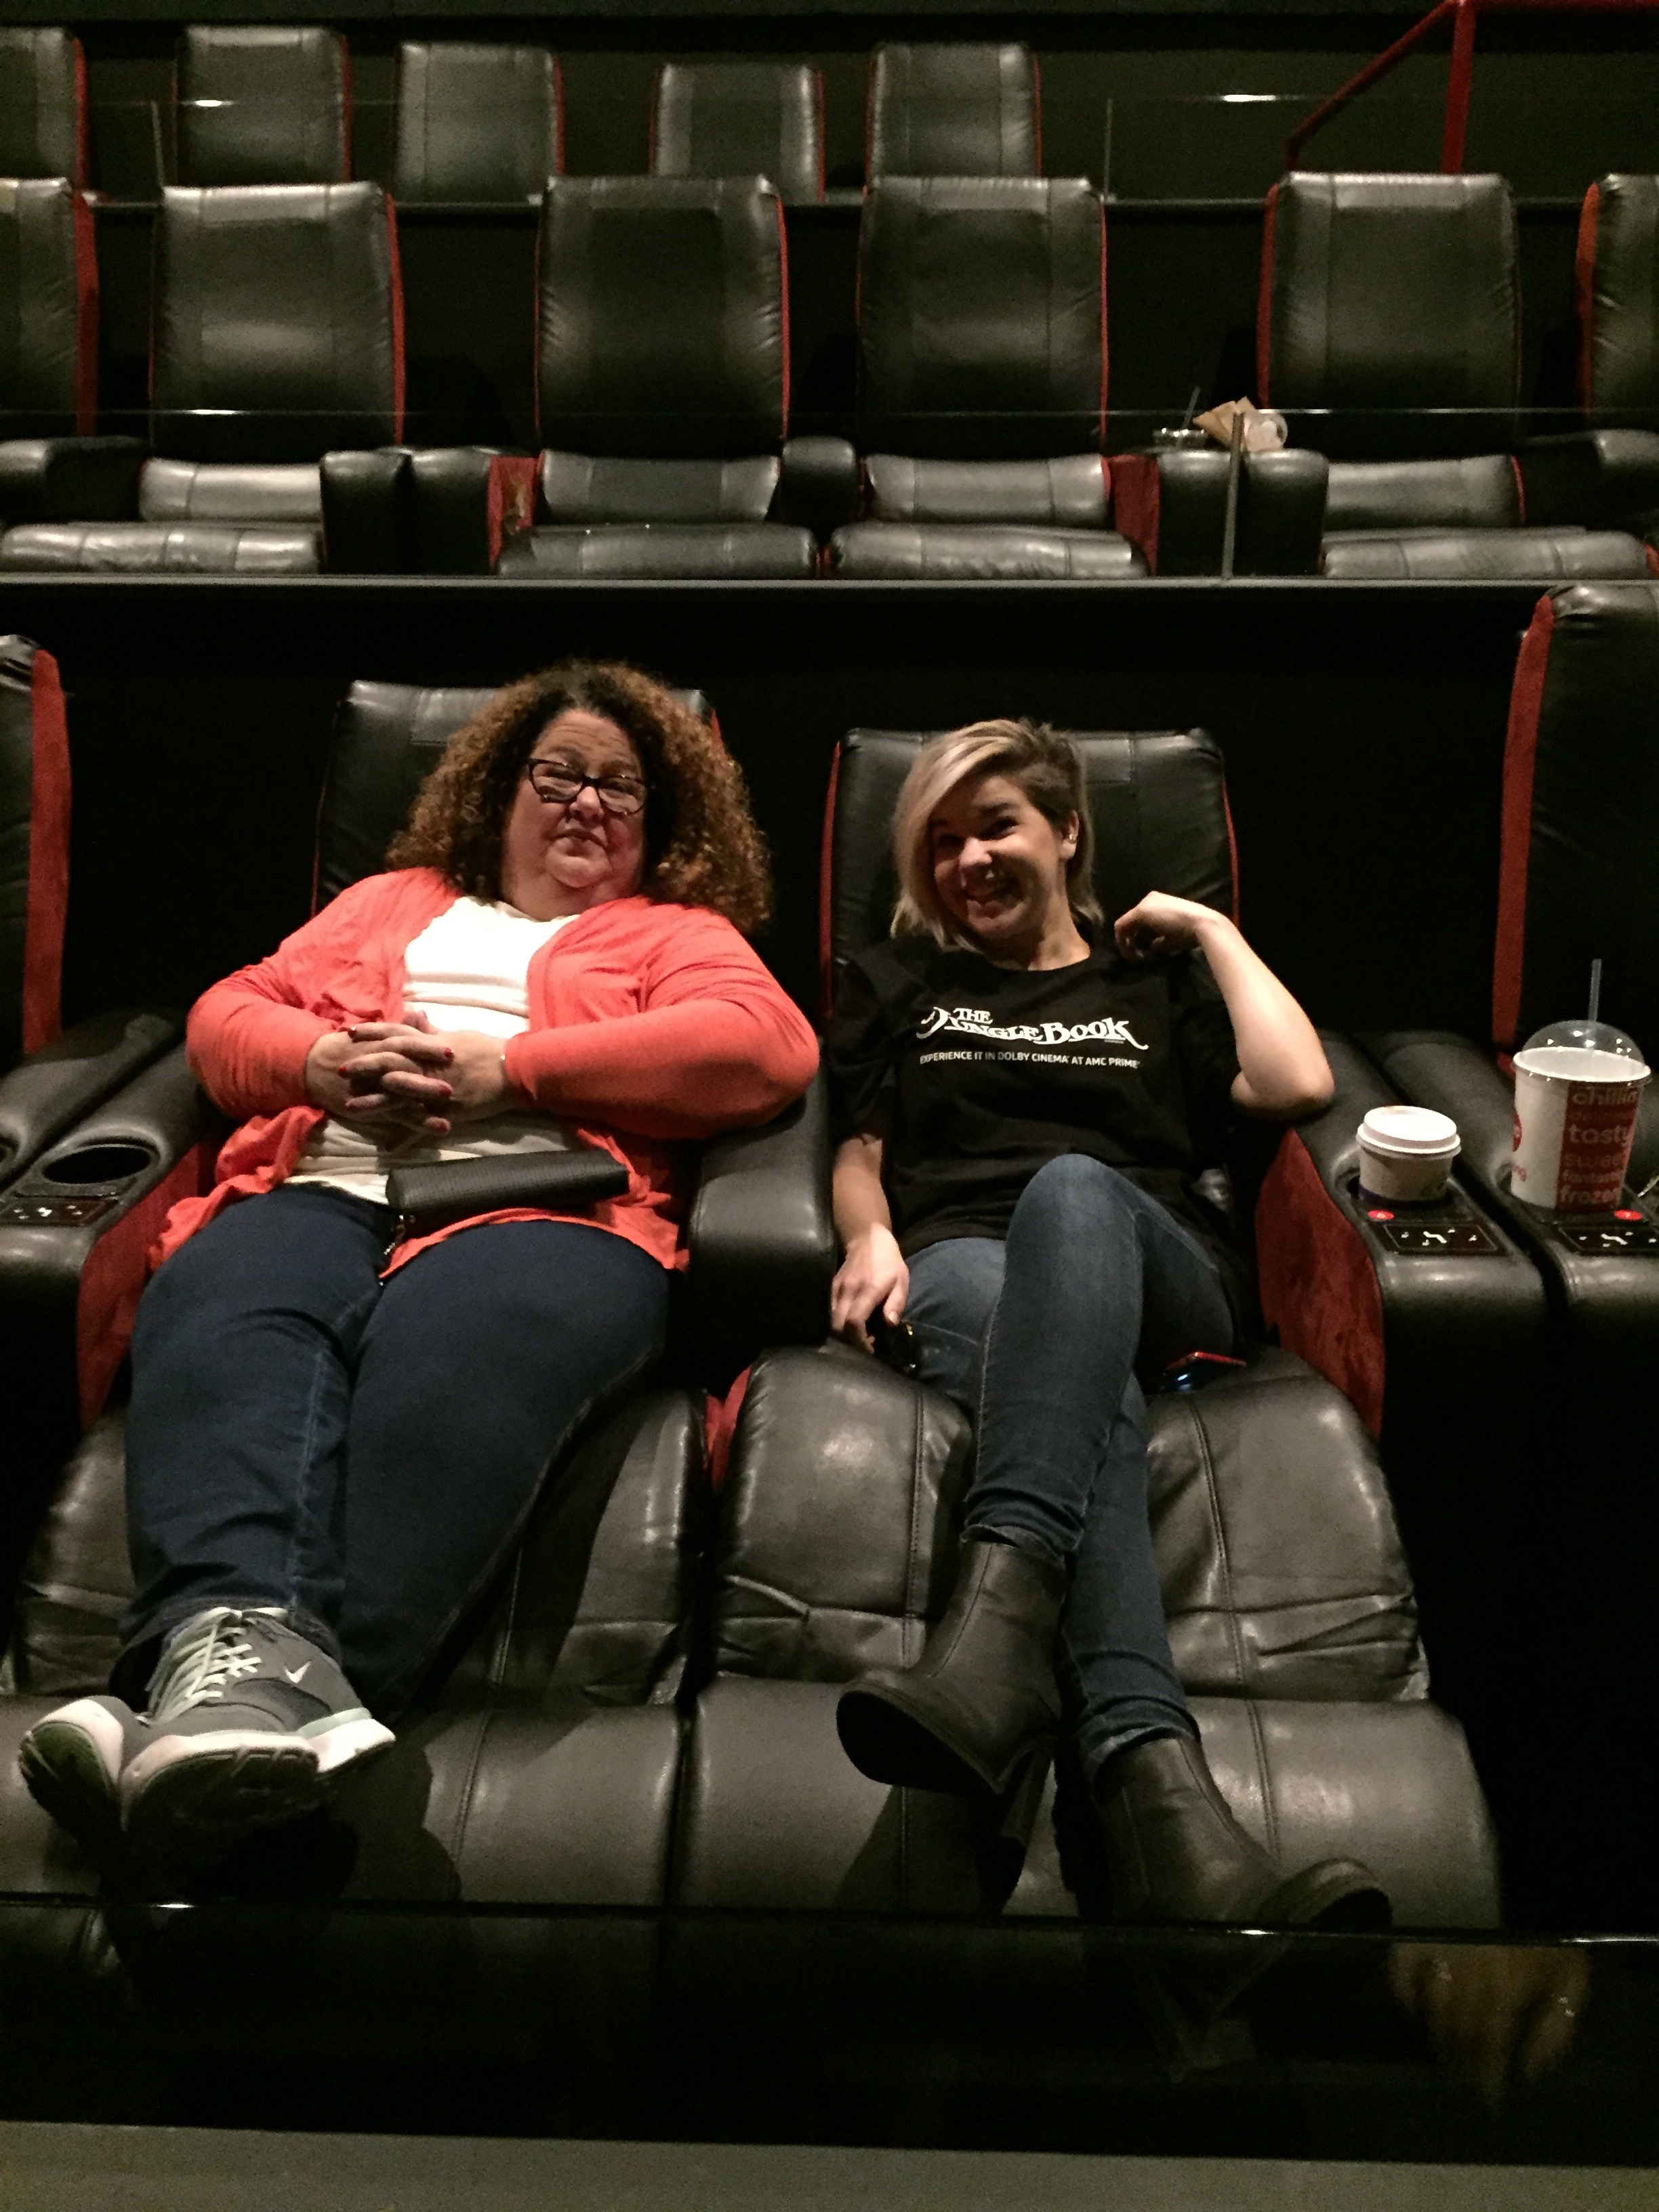 Me & Lucy in the Recliners of Awesomeness.